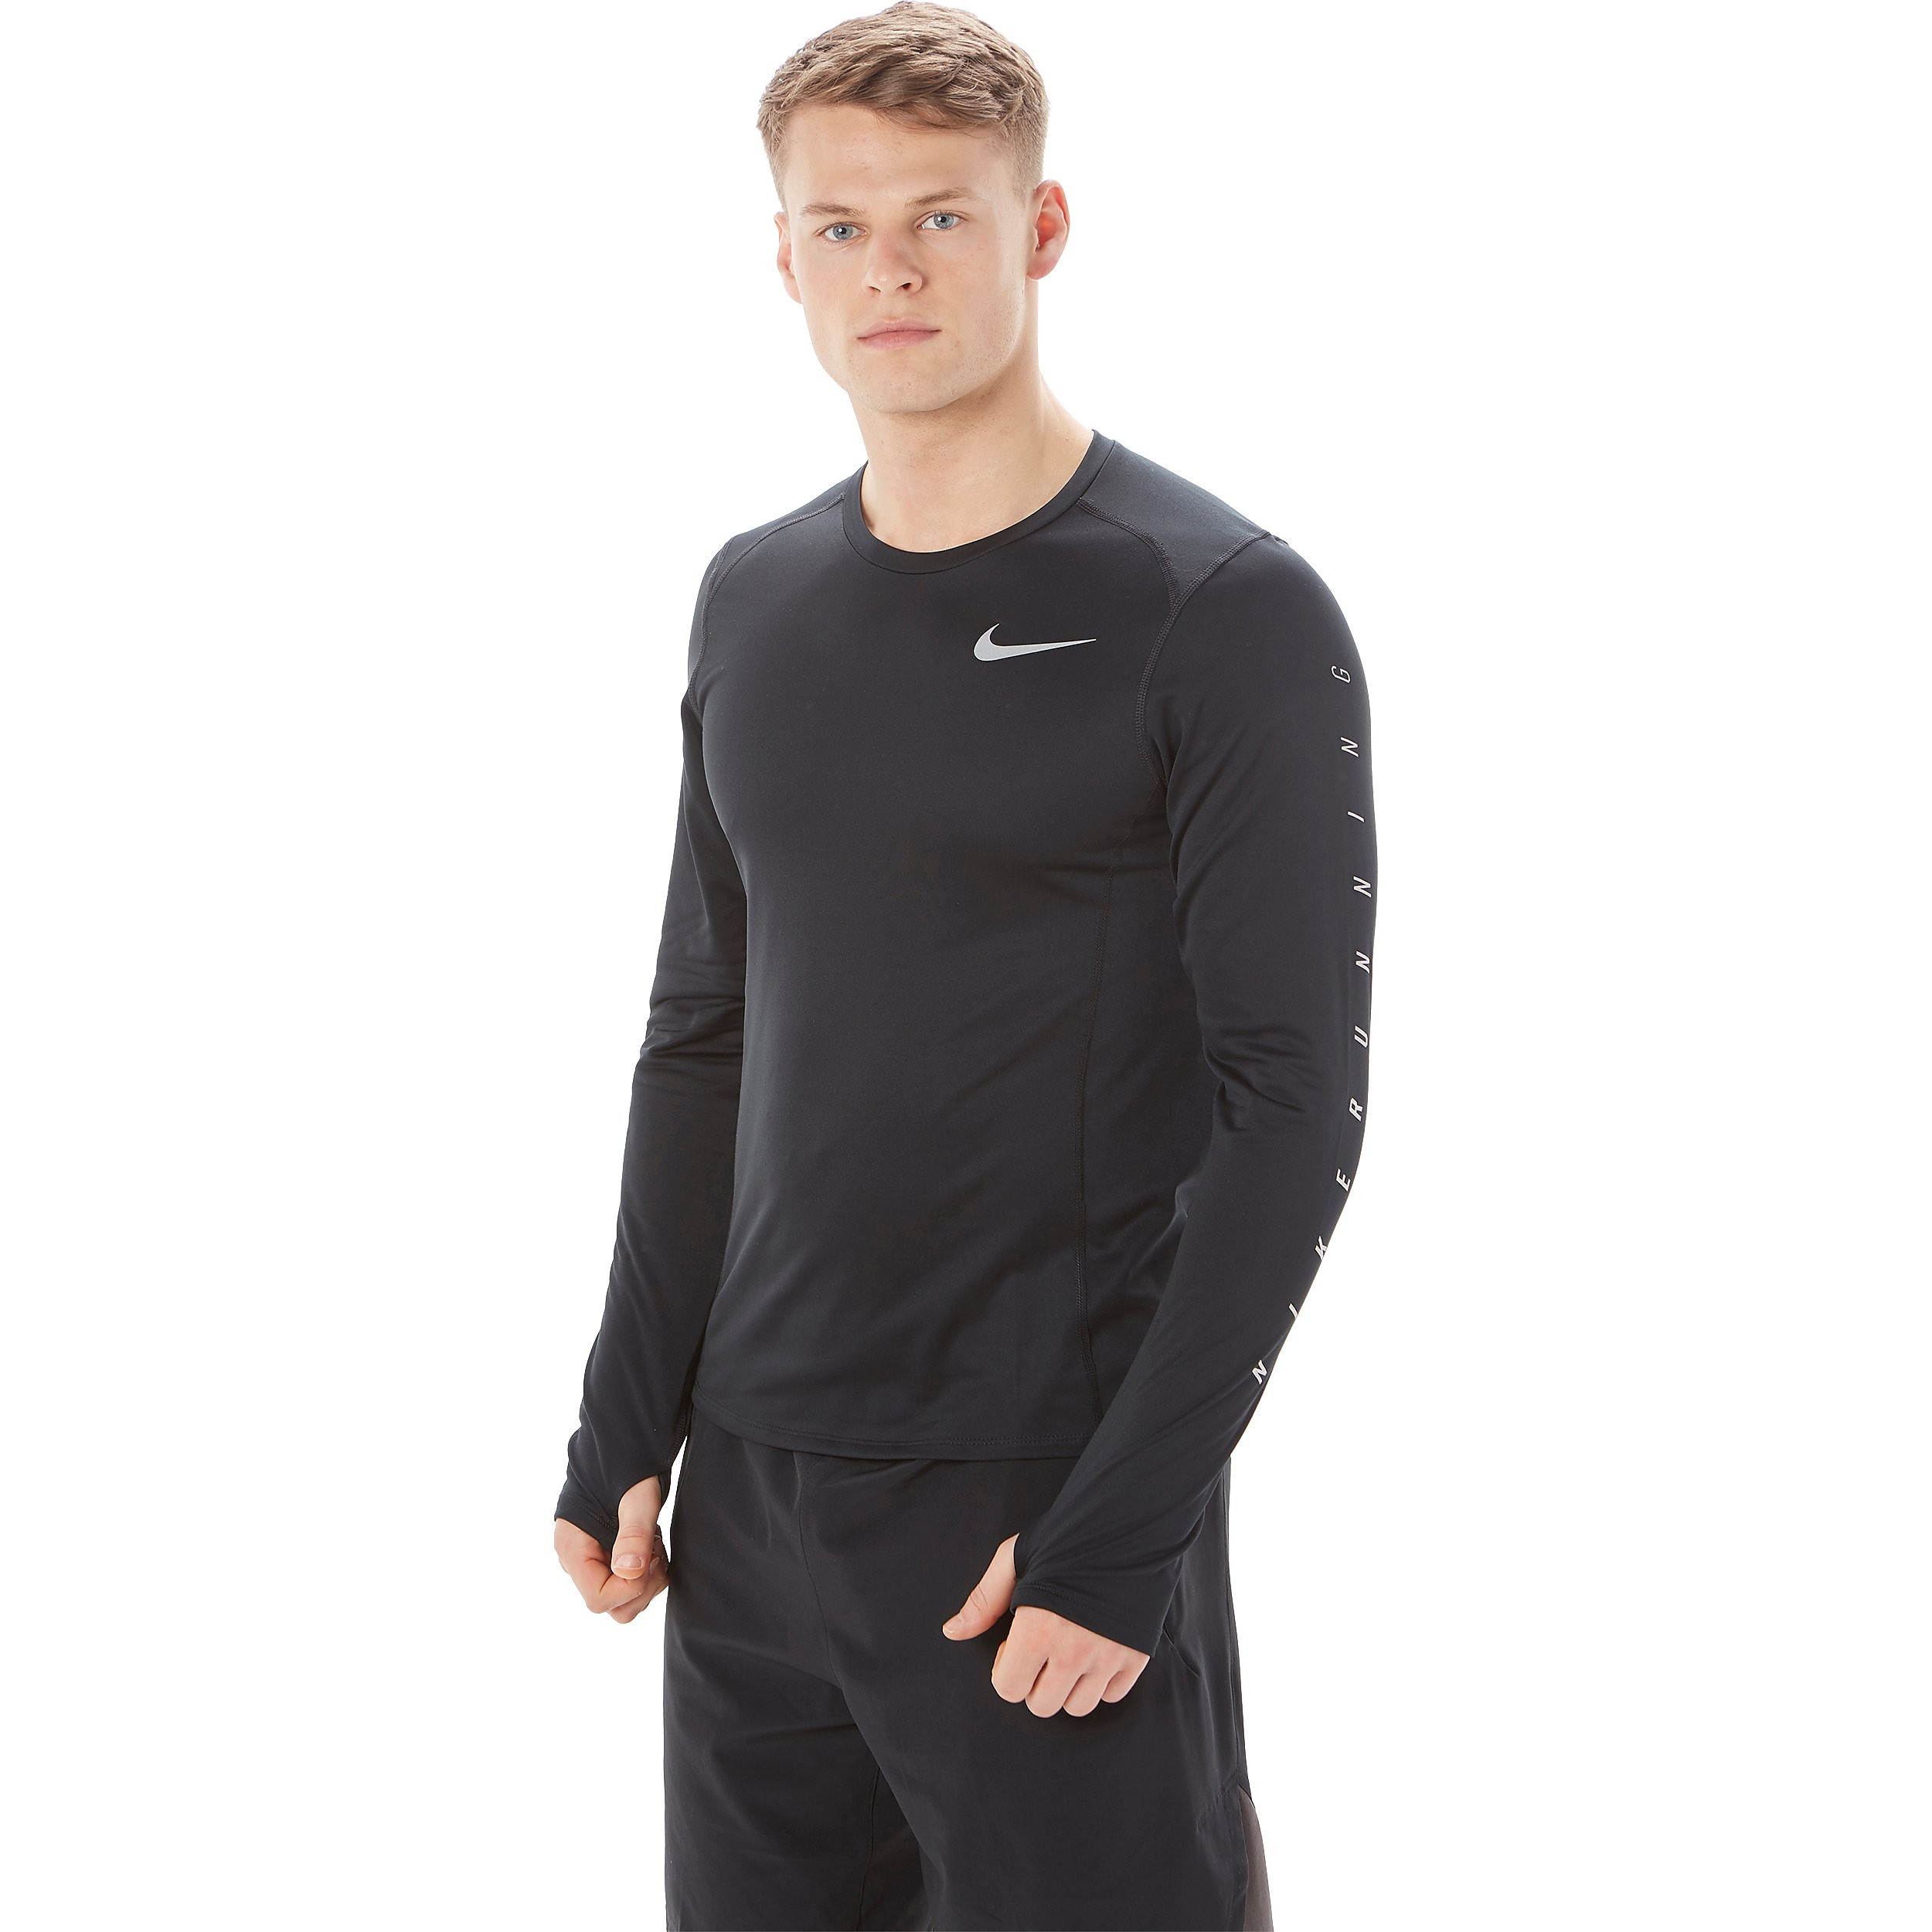 Nike Miler Flash Men's Running Top